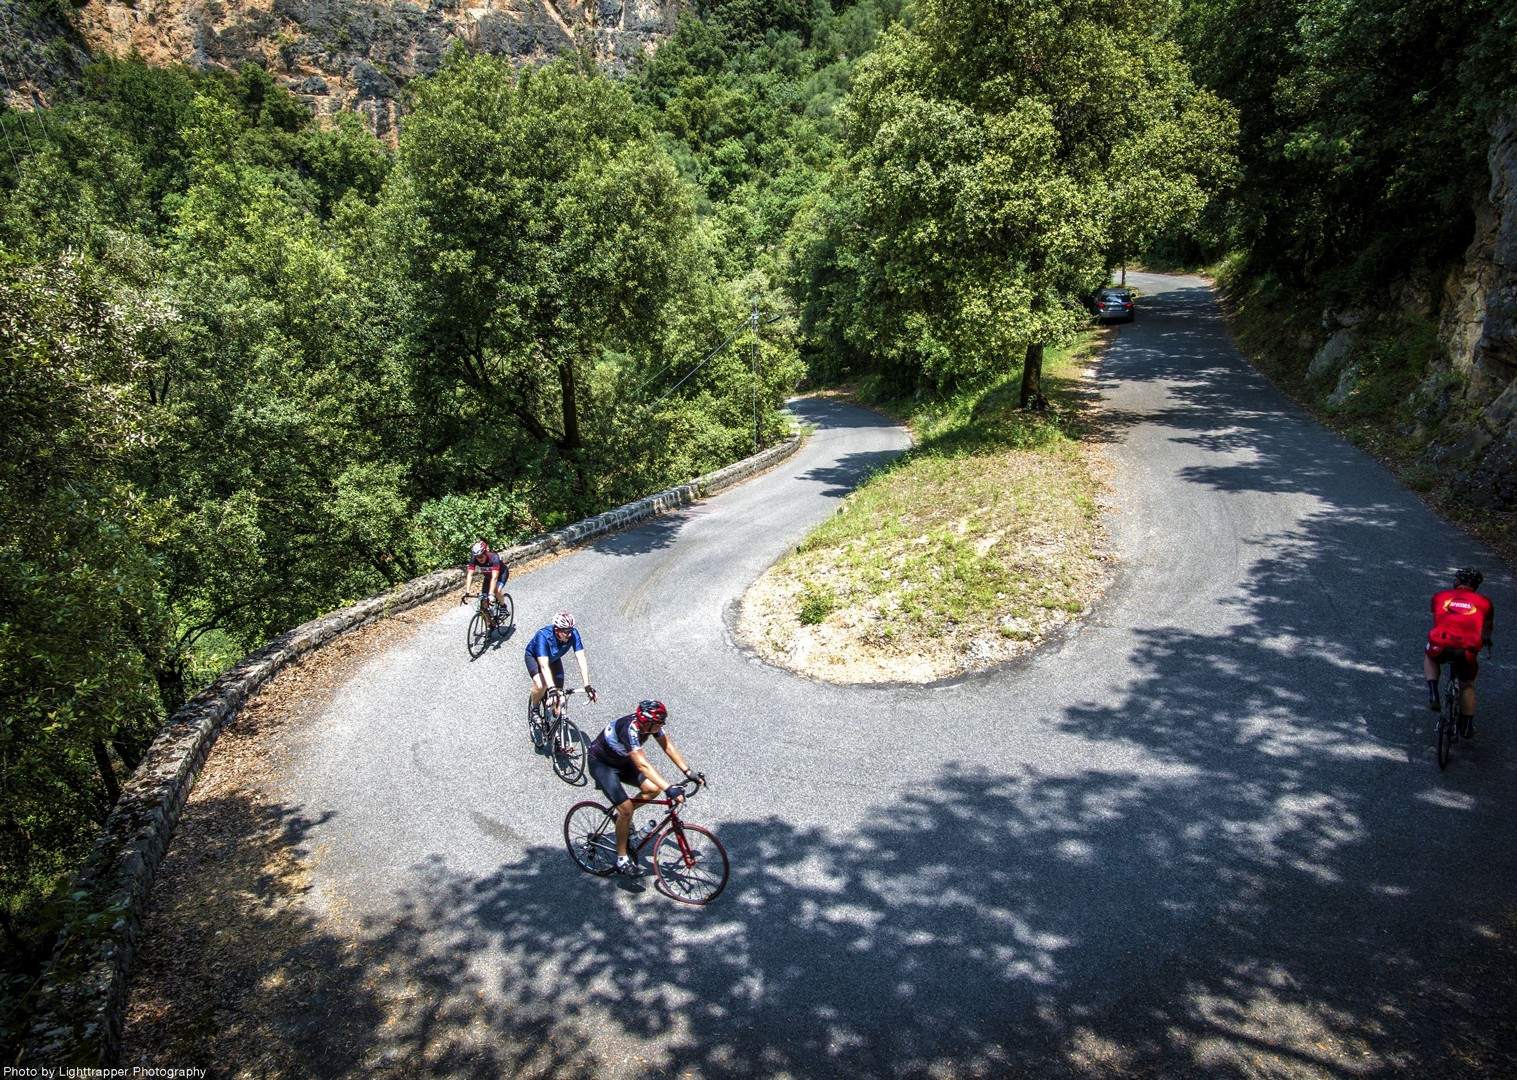 col-de-turini-road-cycling-holiday-france.jpg - France - Provence - Alpes Maritimes - Guided Road Cycling Holiday - Road Cycling